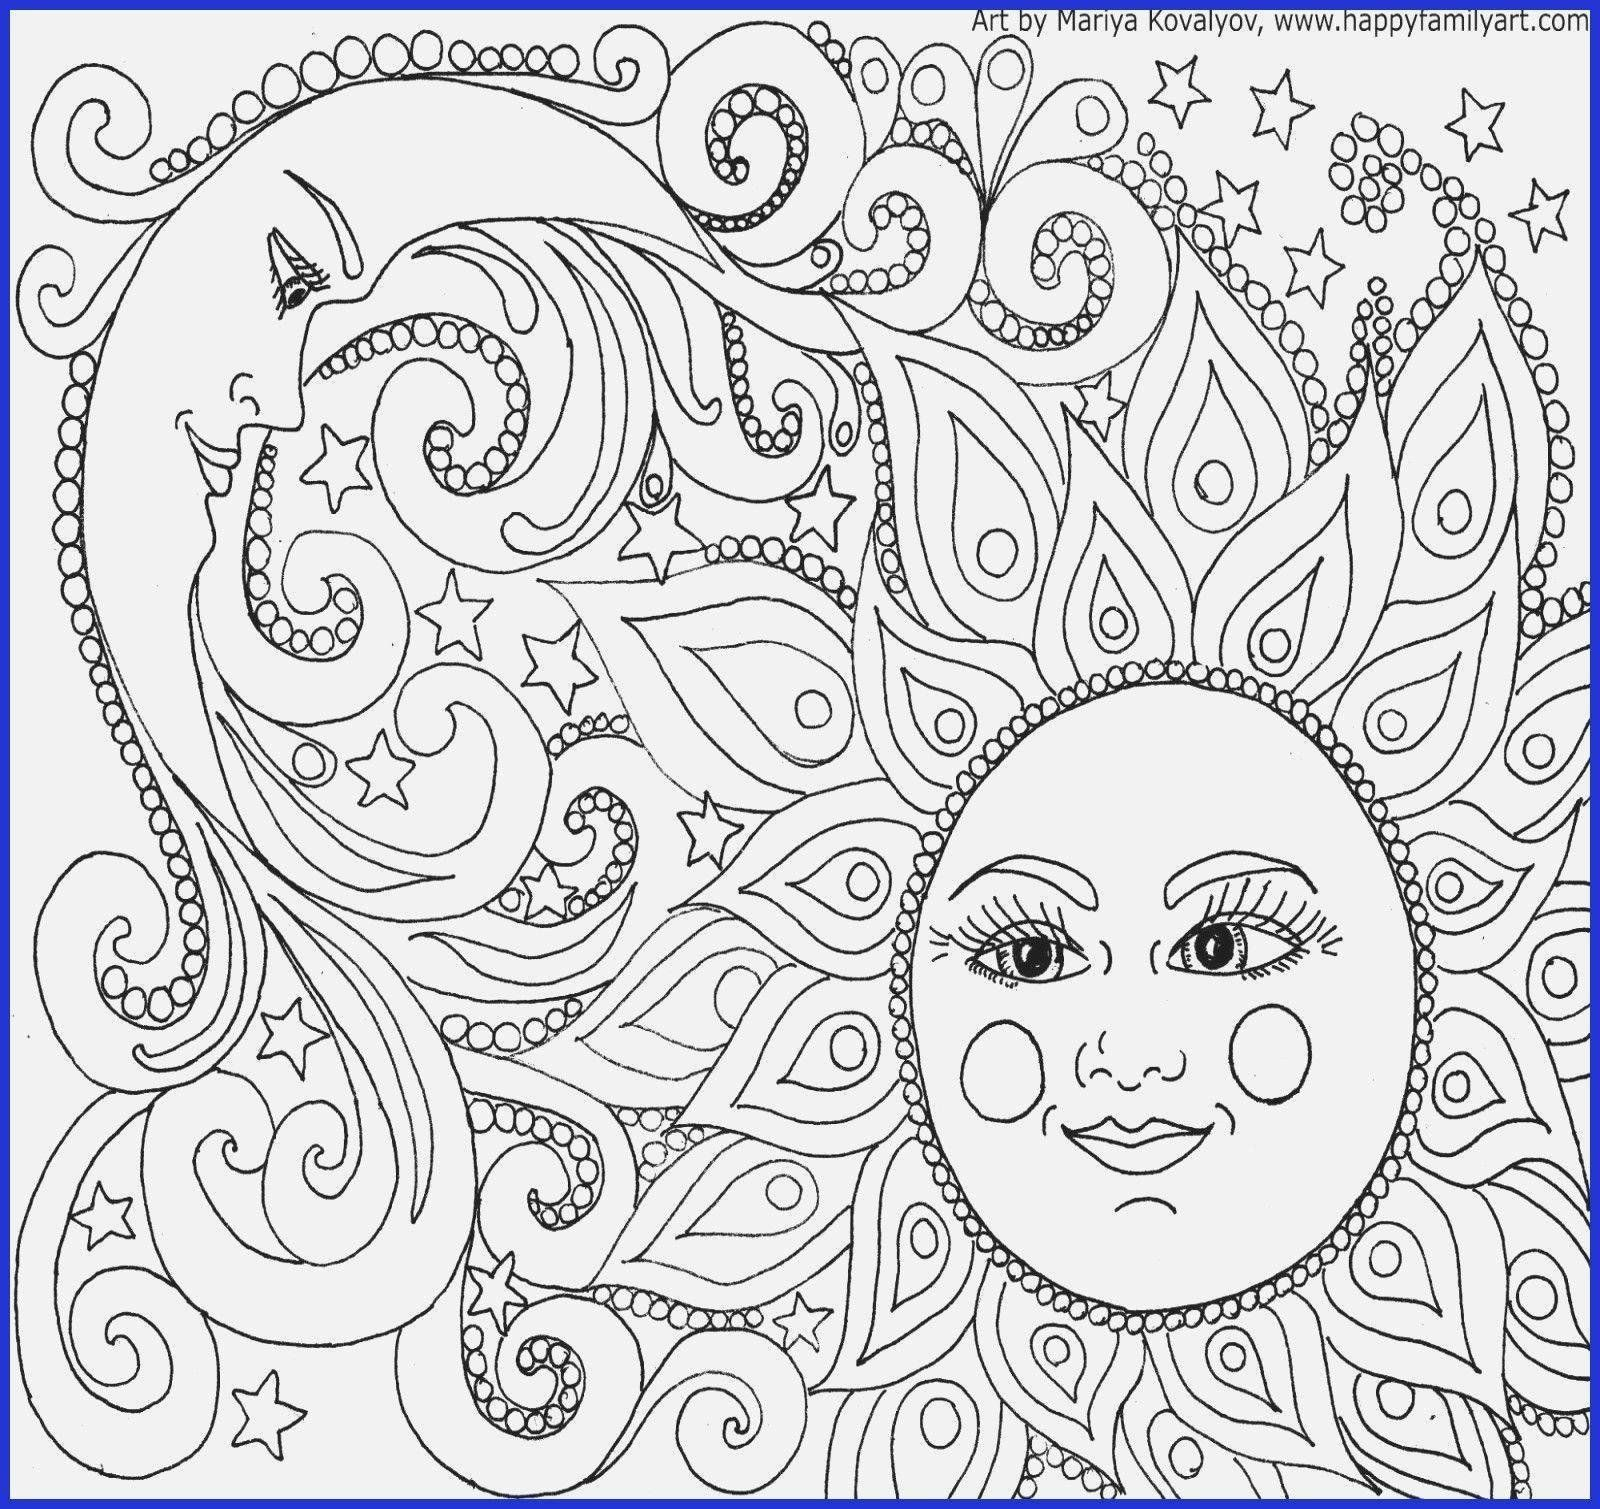 Free Printable Coloring Pages For Adults Advanced Dragons Best Of New Free Printable Colorin In 2020 Moon Coloring Pages Mandala Coloring Pages Abstract Coloring Pages